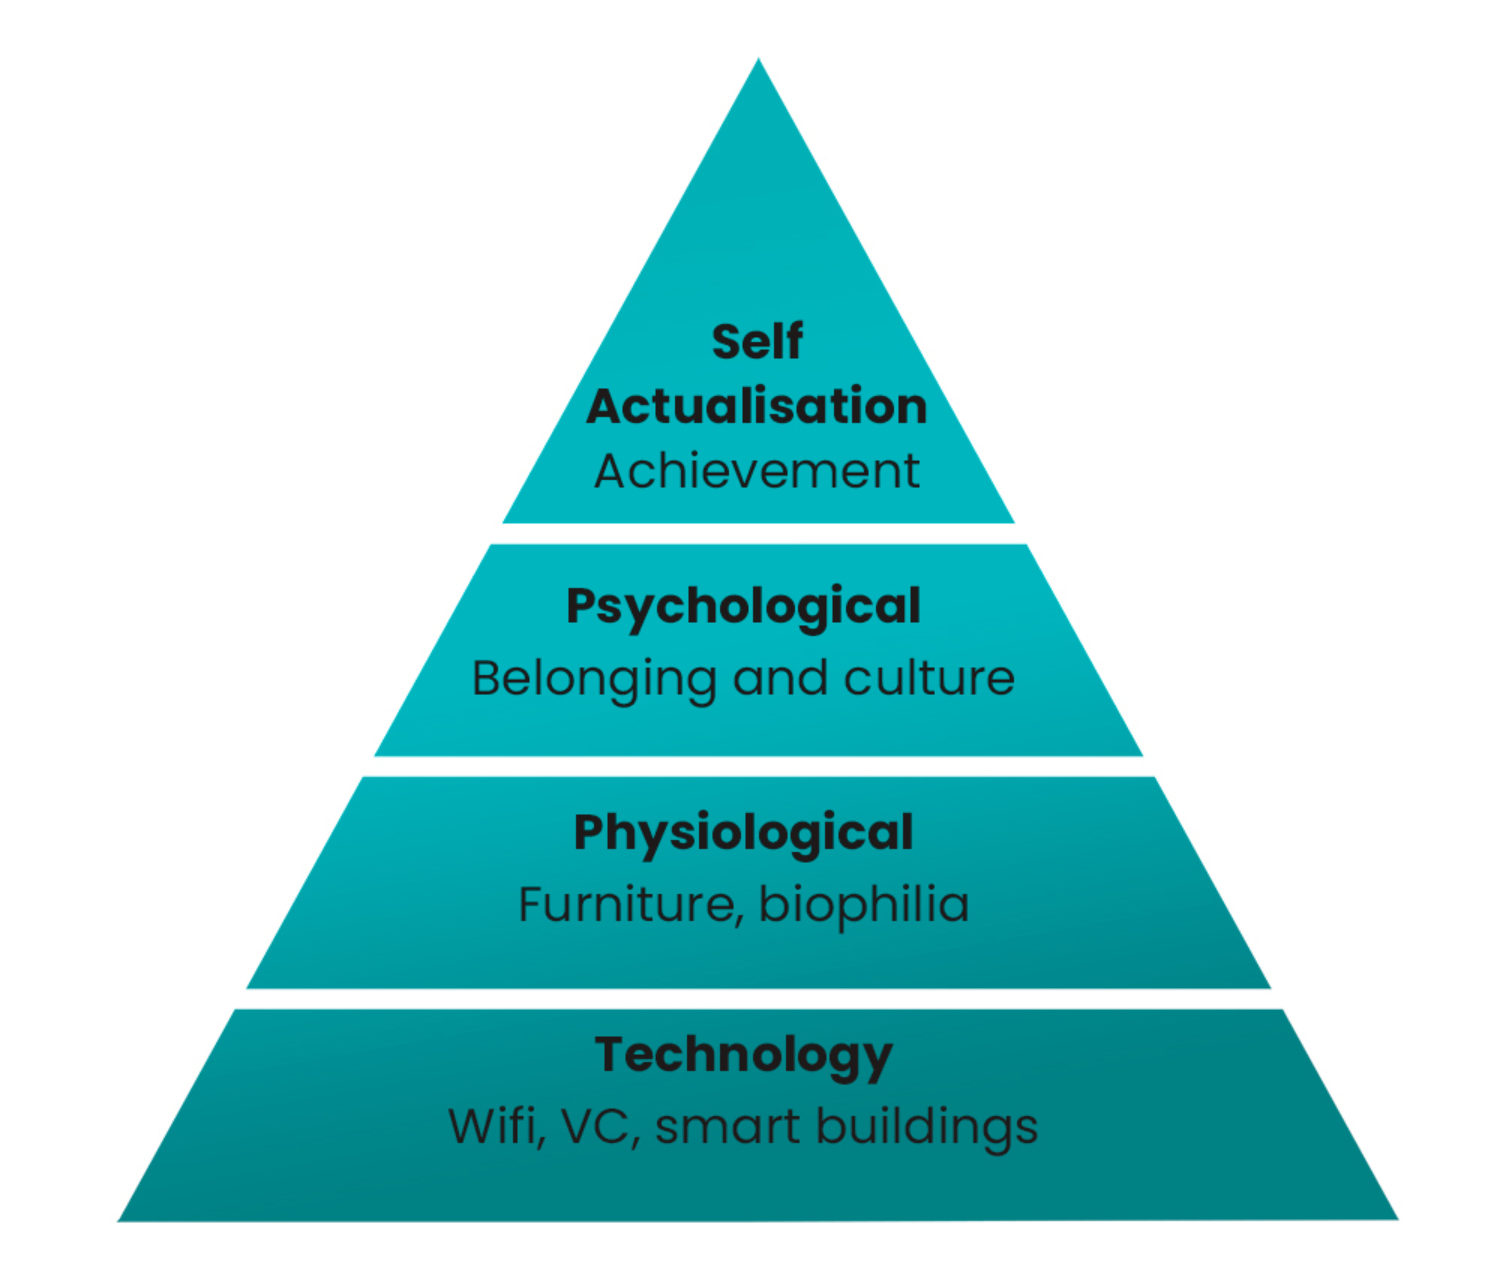 Maslow hierachy of needs in office design